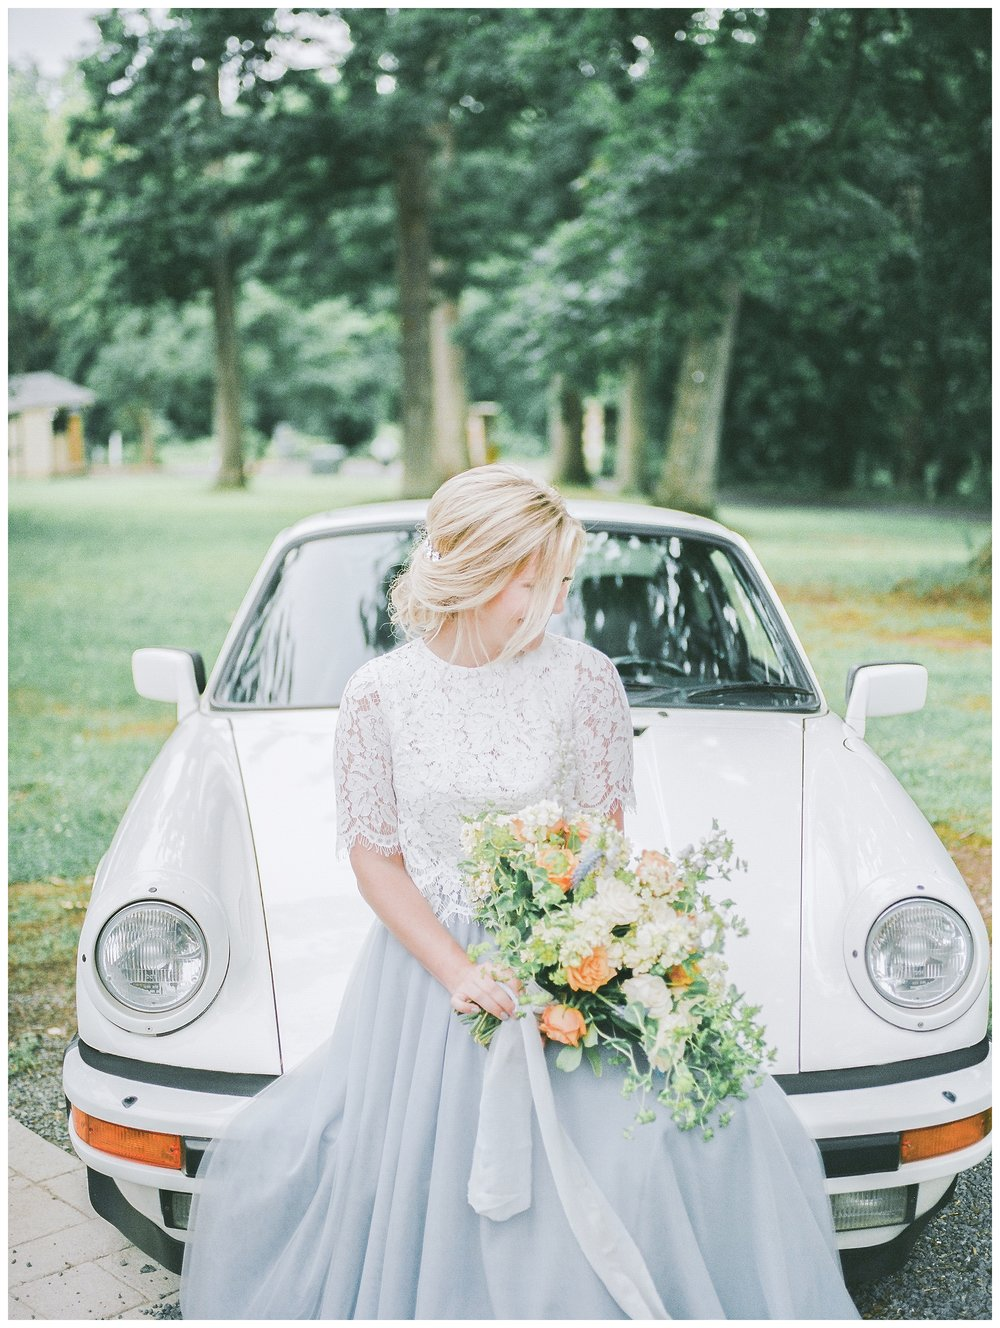 Rust Manor Wedding | Virginia Wedding Photographer Kir Tuben_0054.jpg